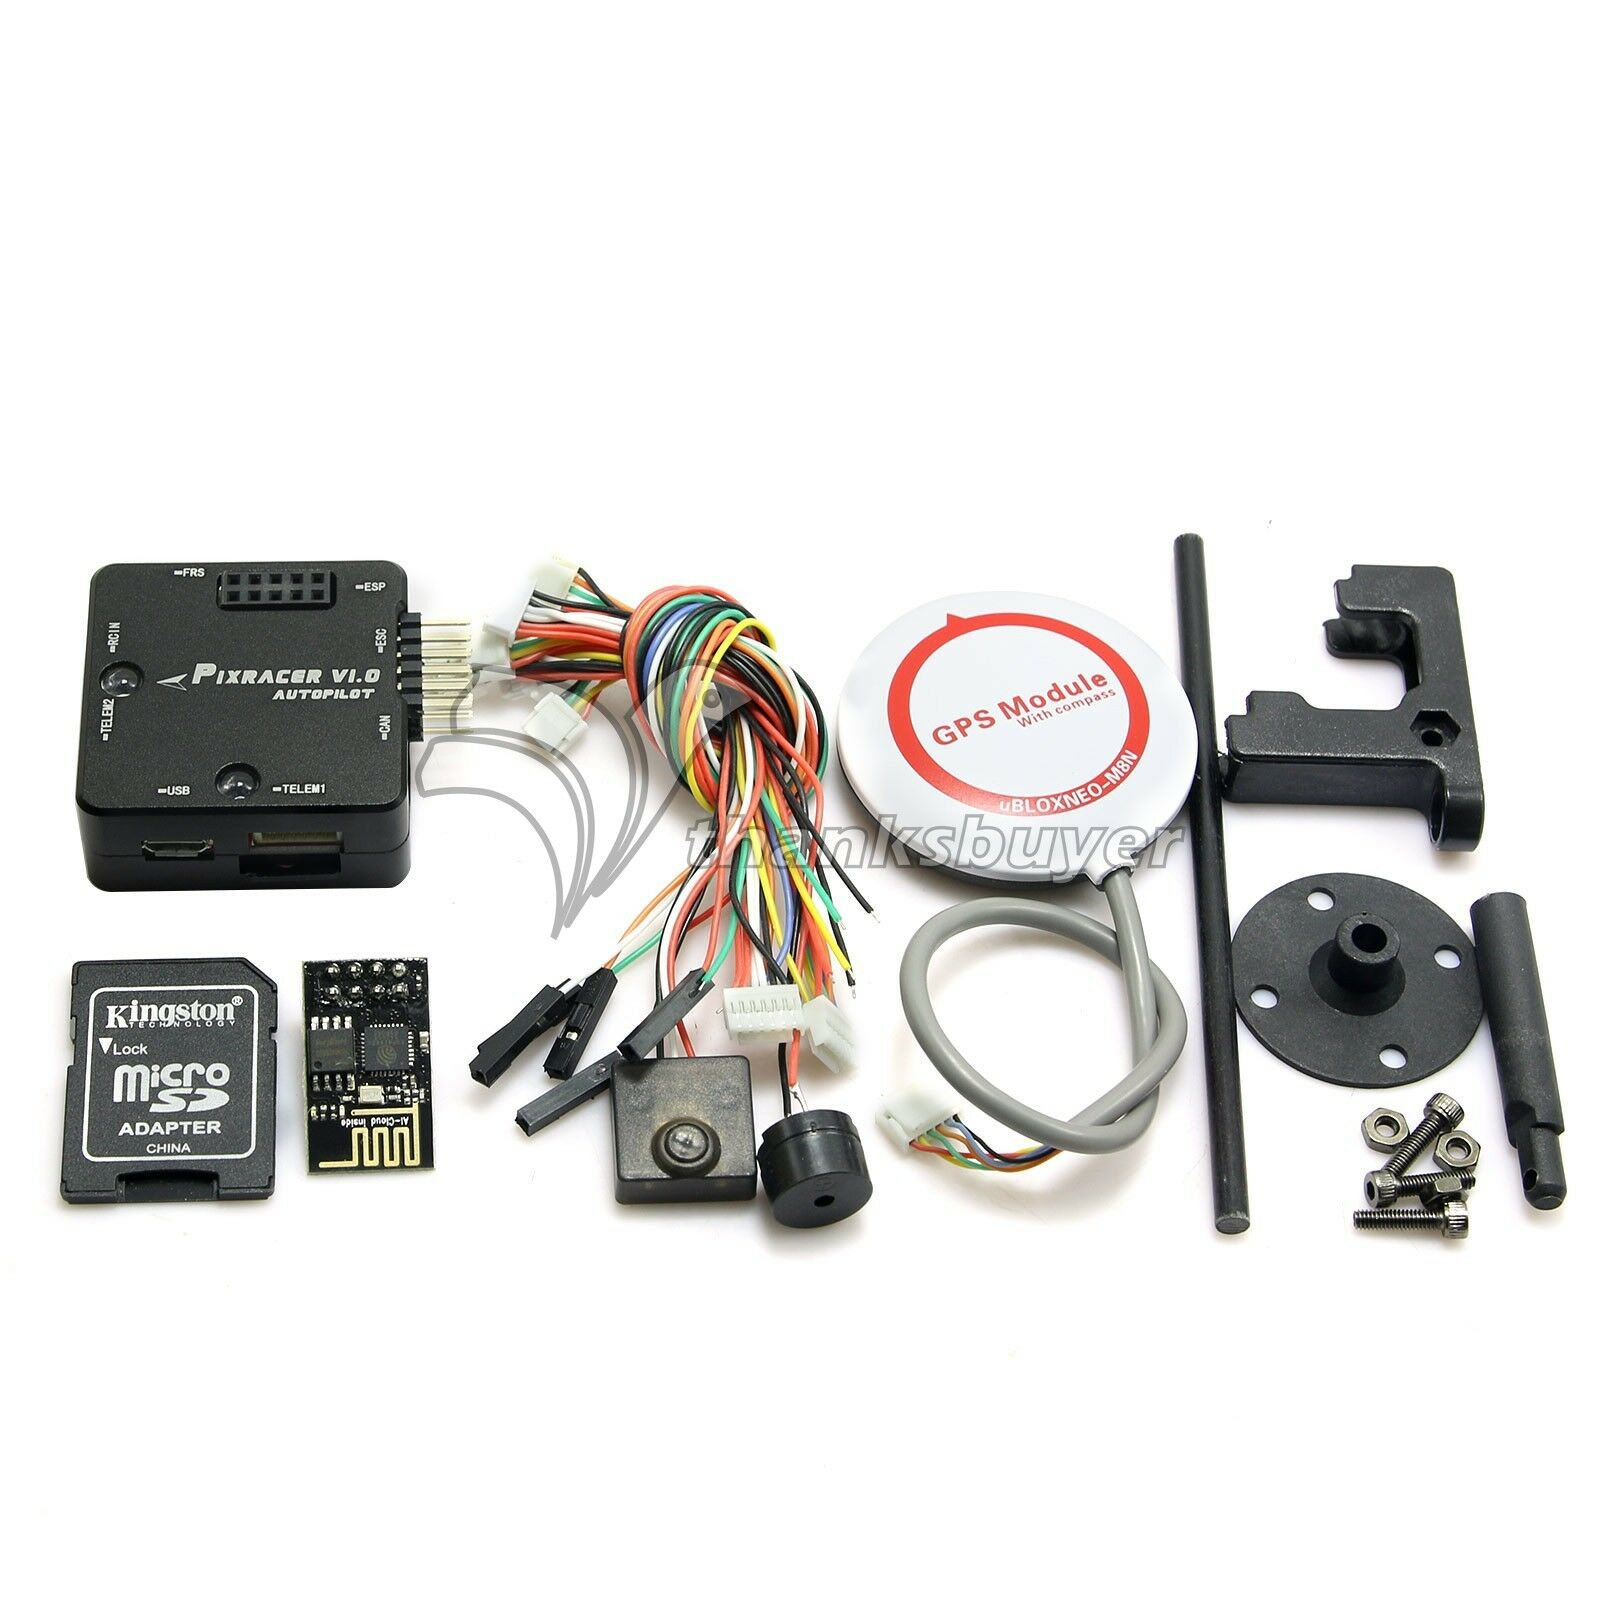 Mini Pixracer Autopilot Xracer V4 PX4 Flight Controller + M8N GPS for FPV